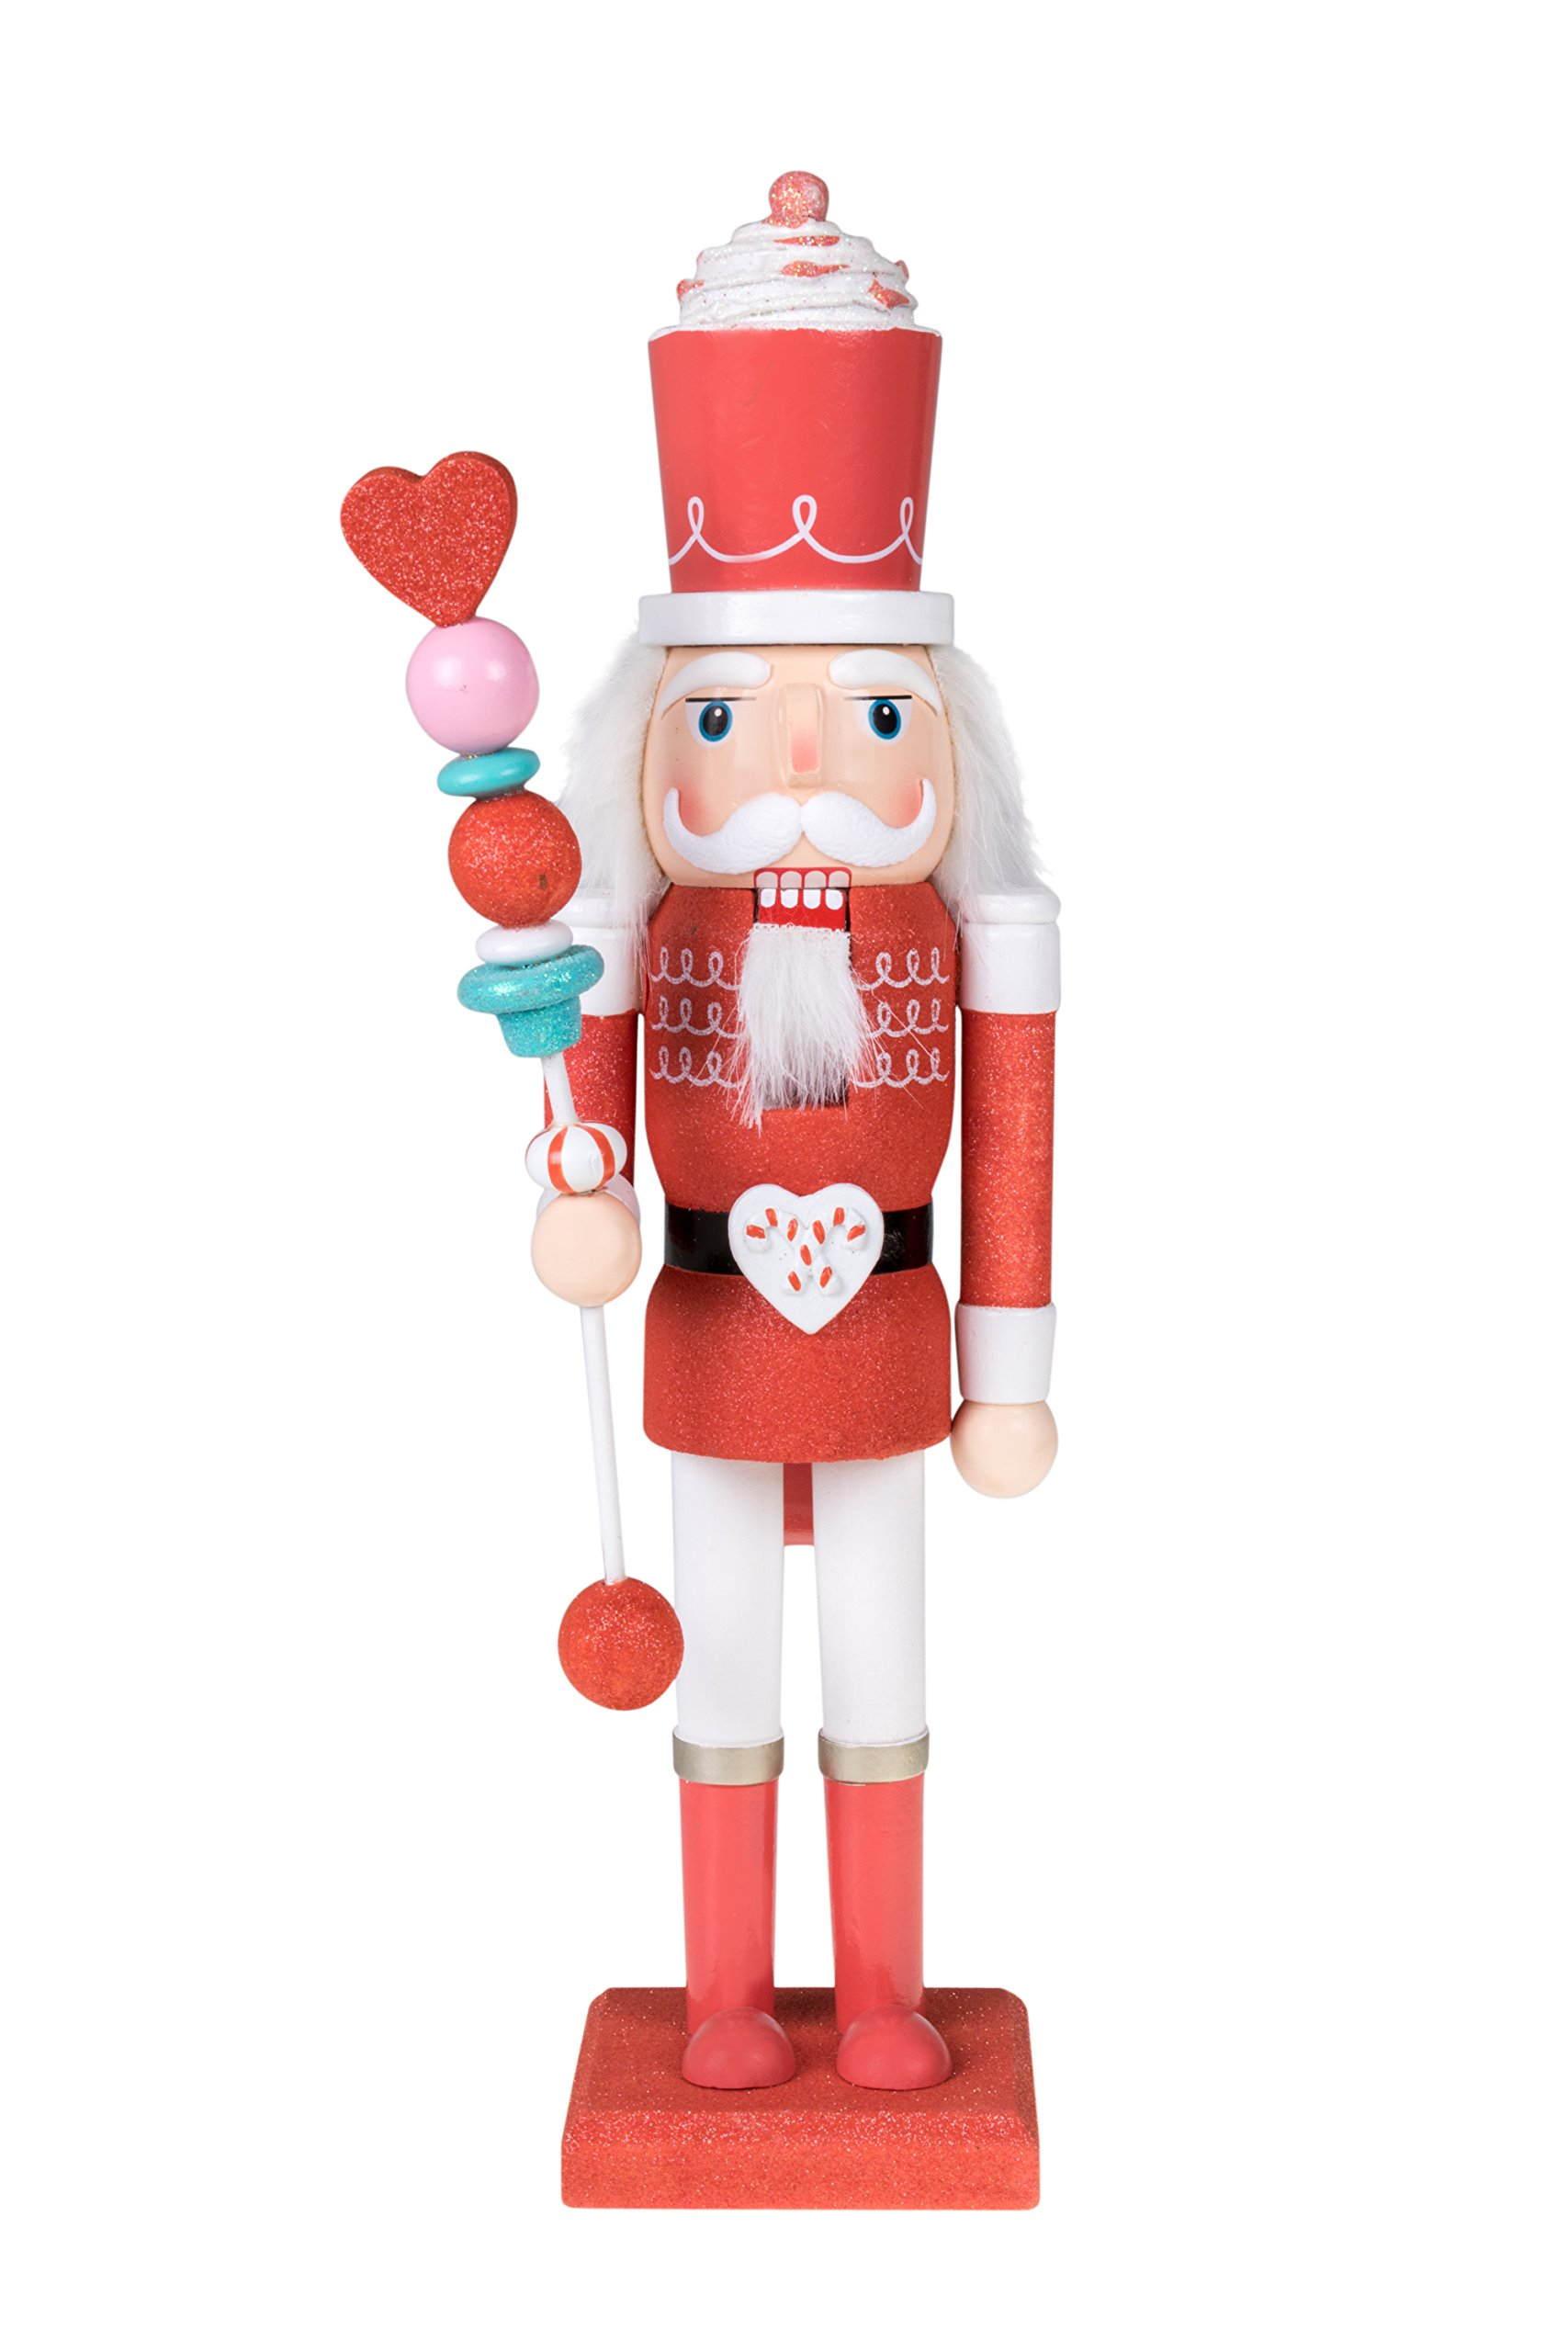 Clever Creations Candy King Nutcracker Red Sparkle and White Uniform | Cupcake Crown and Candy Scepter | Collectible Wooden Christmas Nutcracker | Festive Holiday Decor | 100% Wood | 15'' Tall